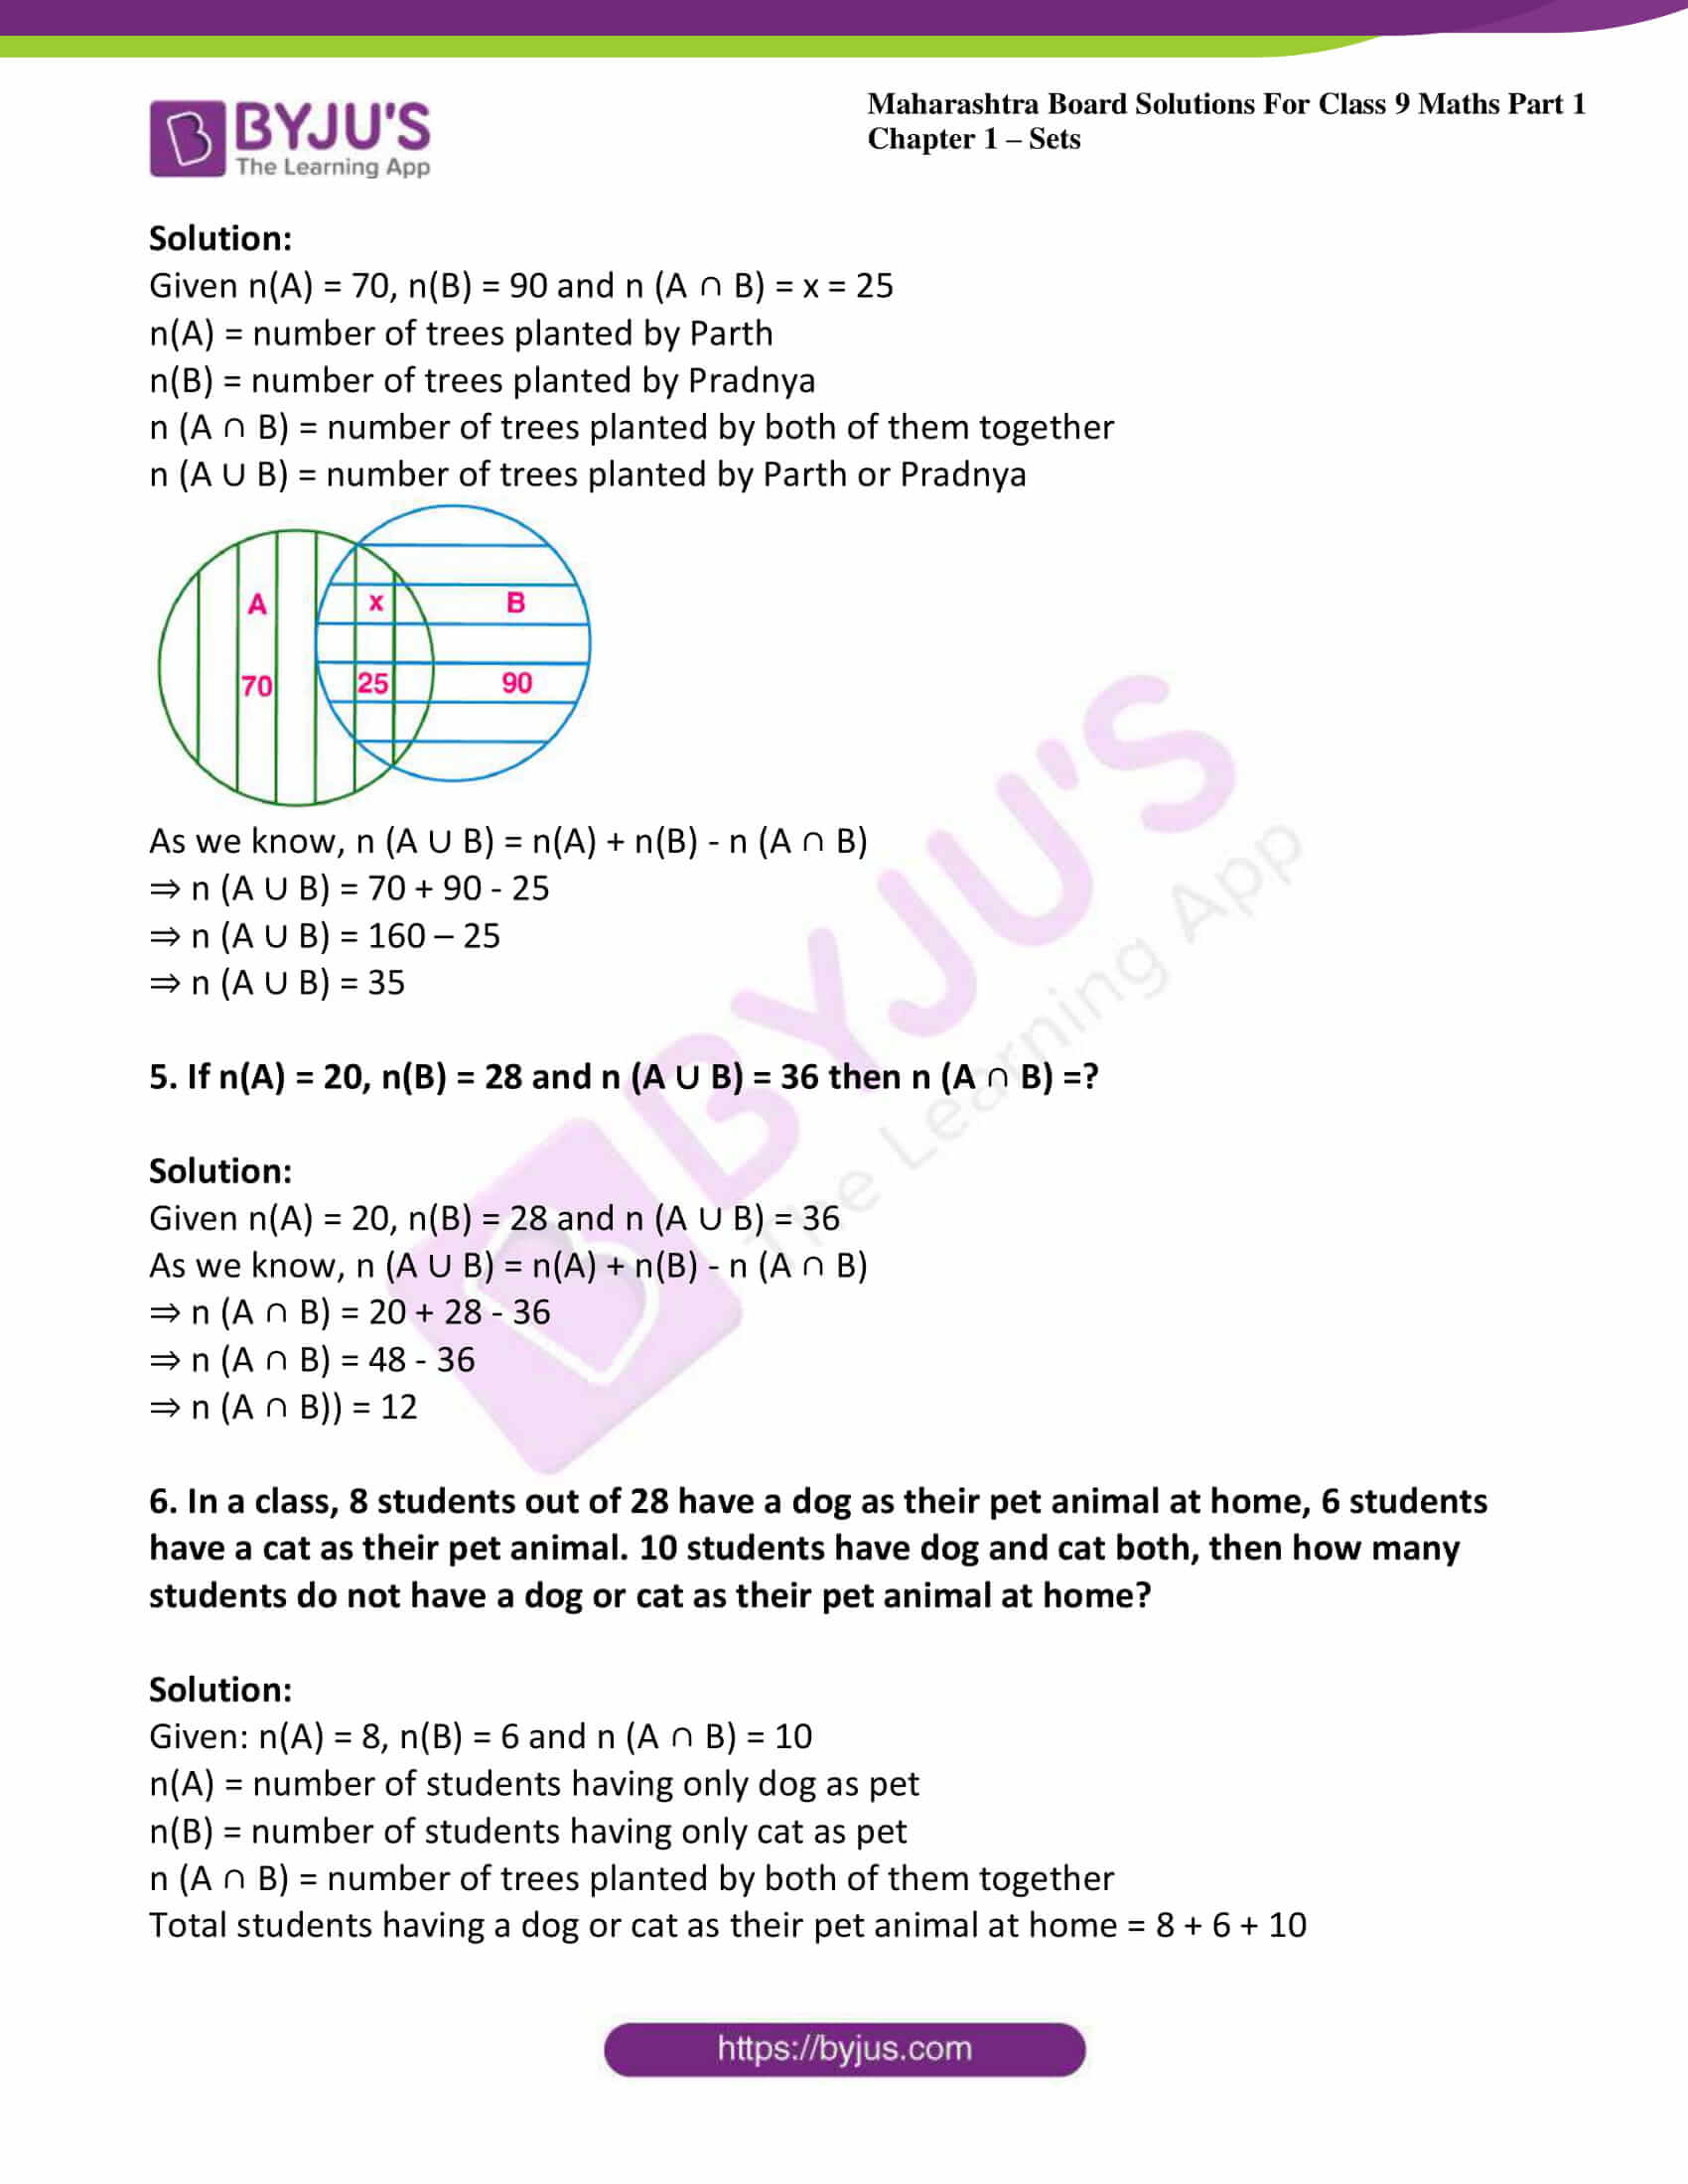 msbshse sol class 9 maths part 1 chapter 1 sets 22